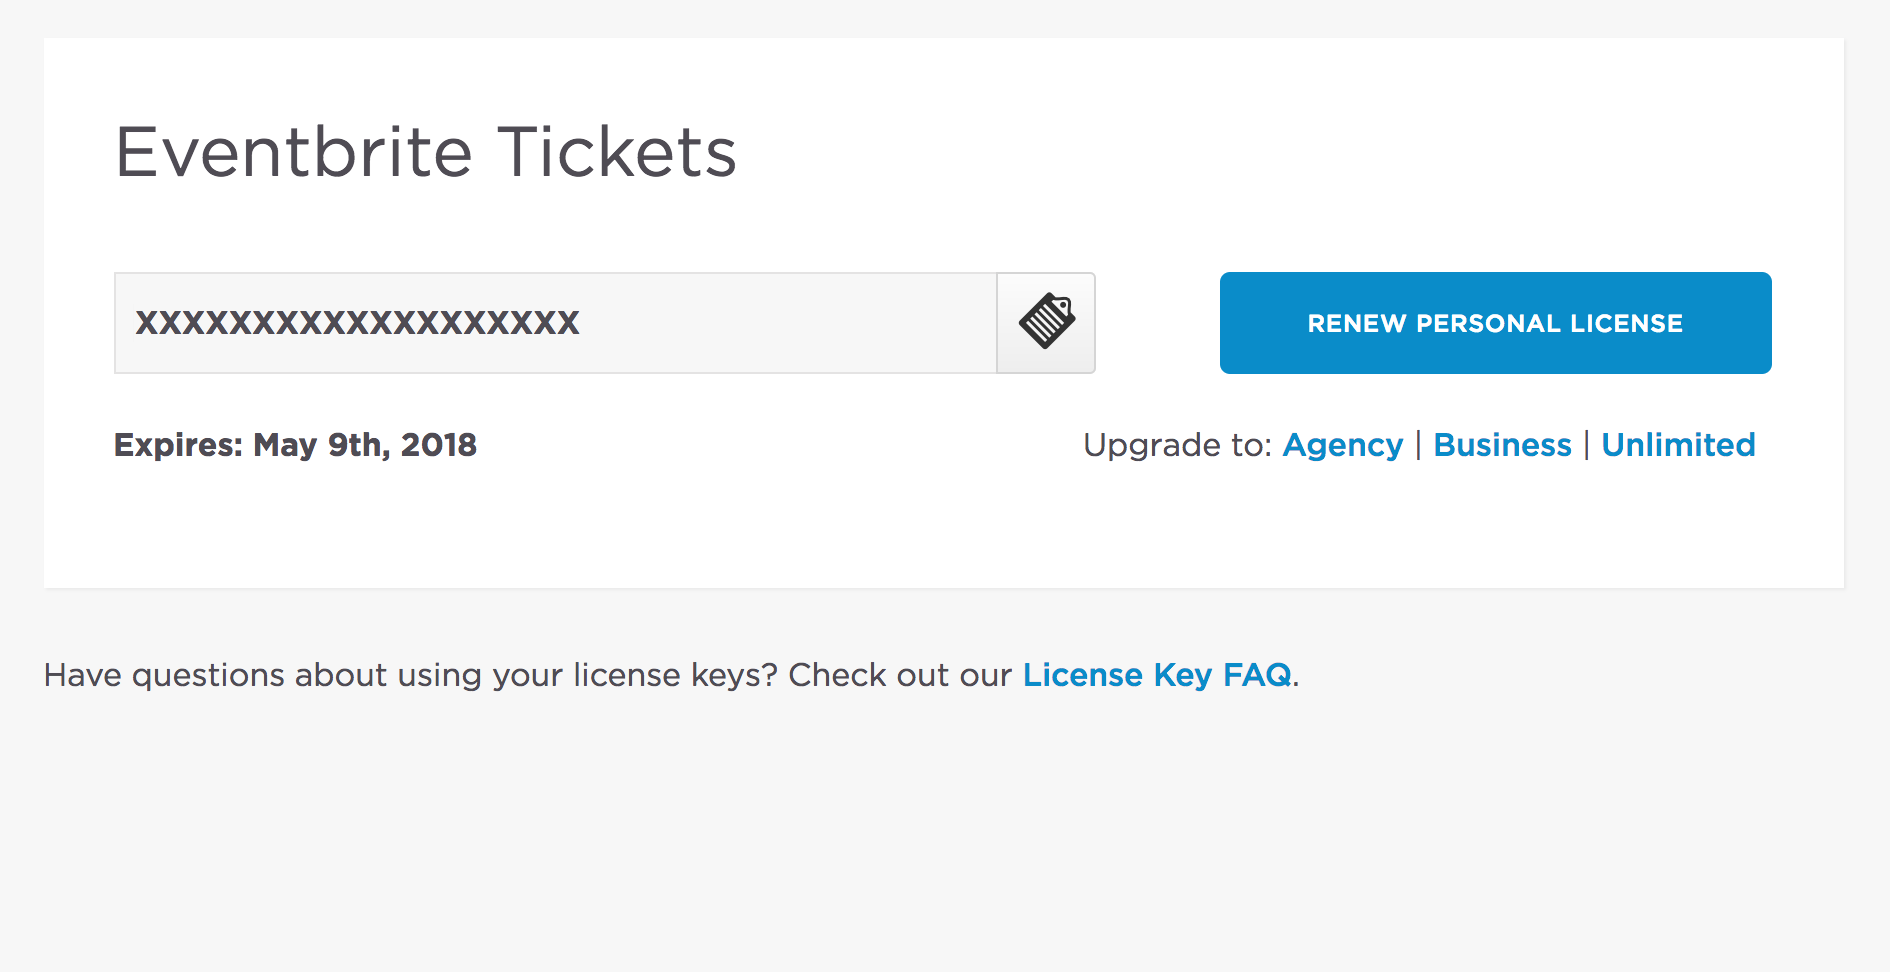 Eventbrite Tickets, but the license key is invalid (unable